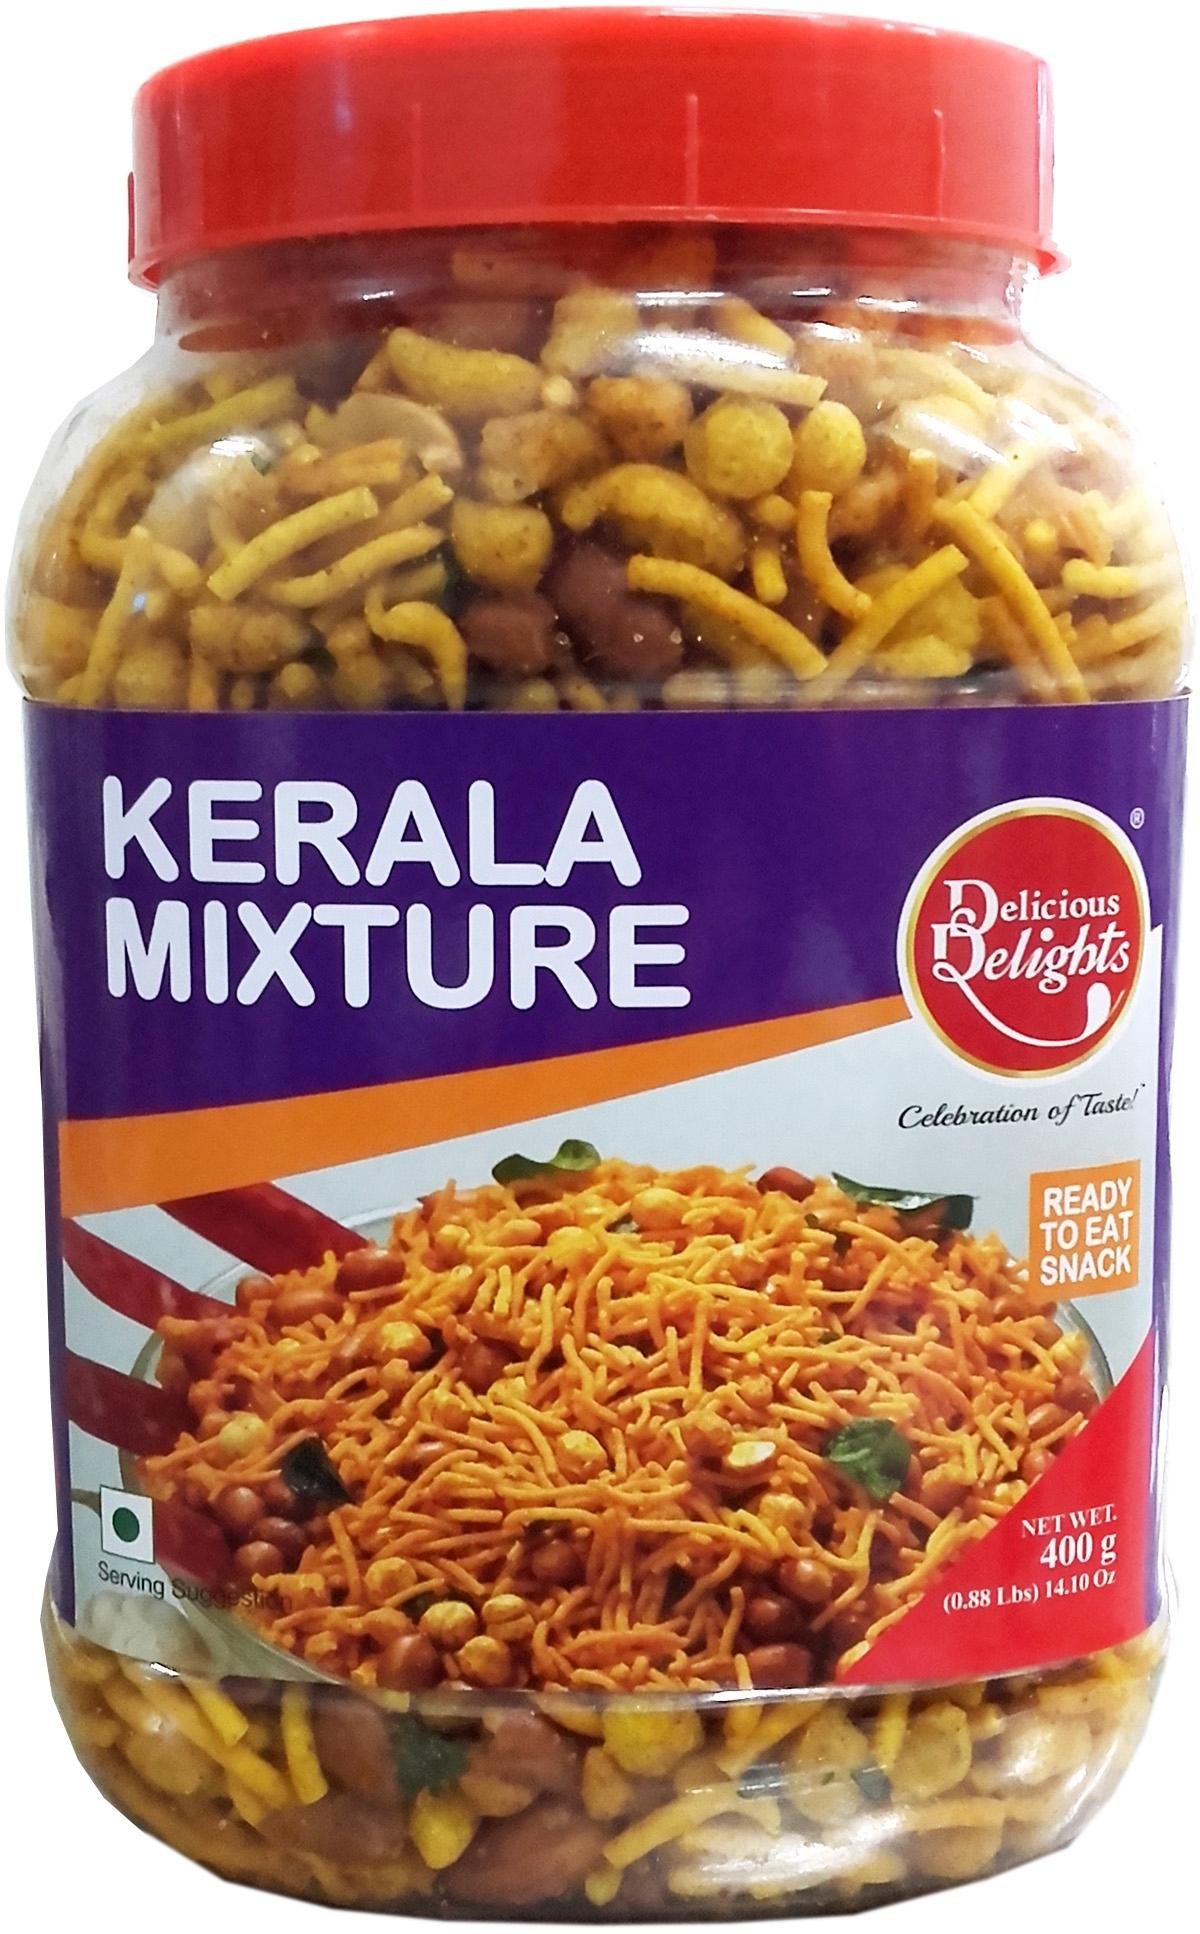 Kerala Mixture